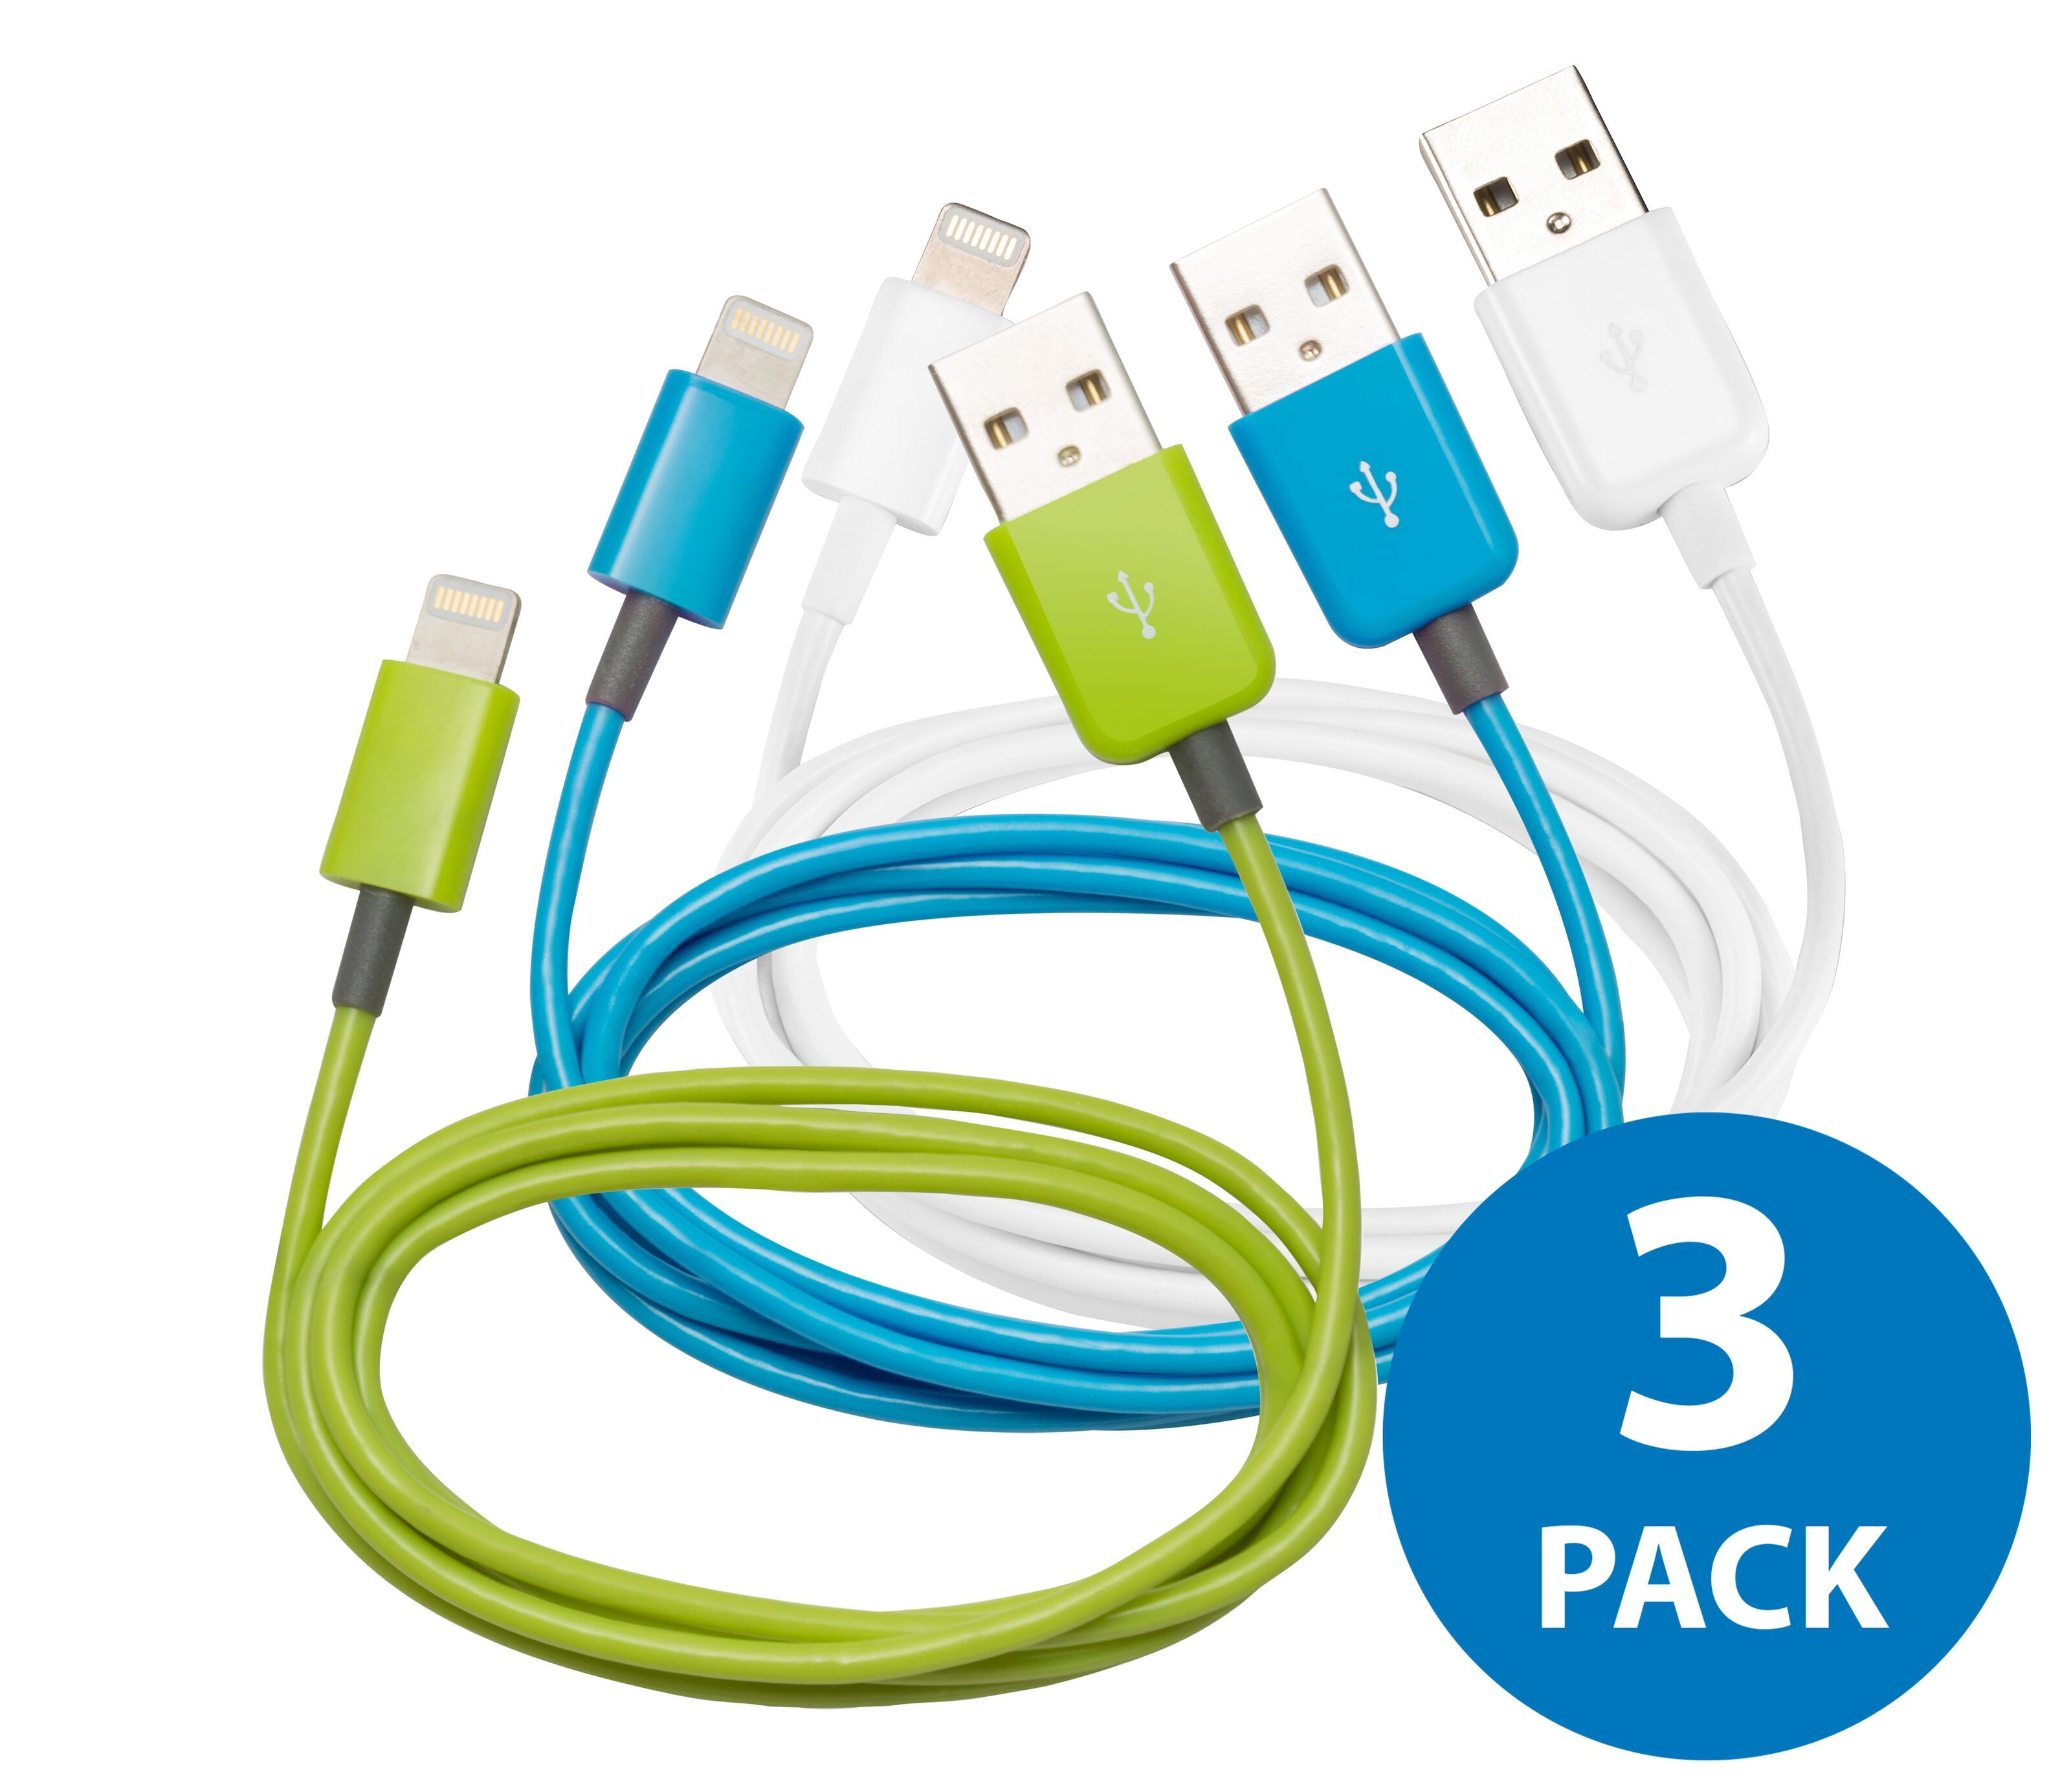 1 Pack Lightning laddare för iPhone iPad iShoping.se | Köp